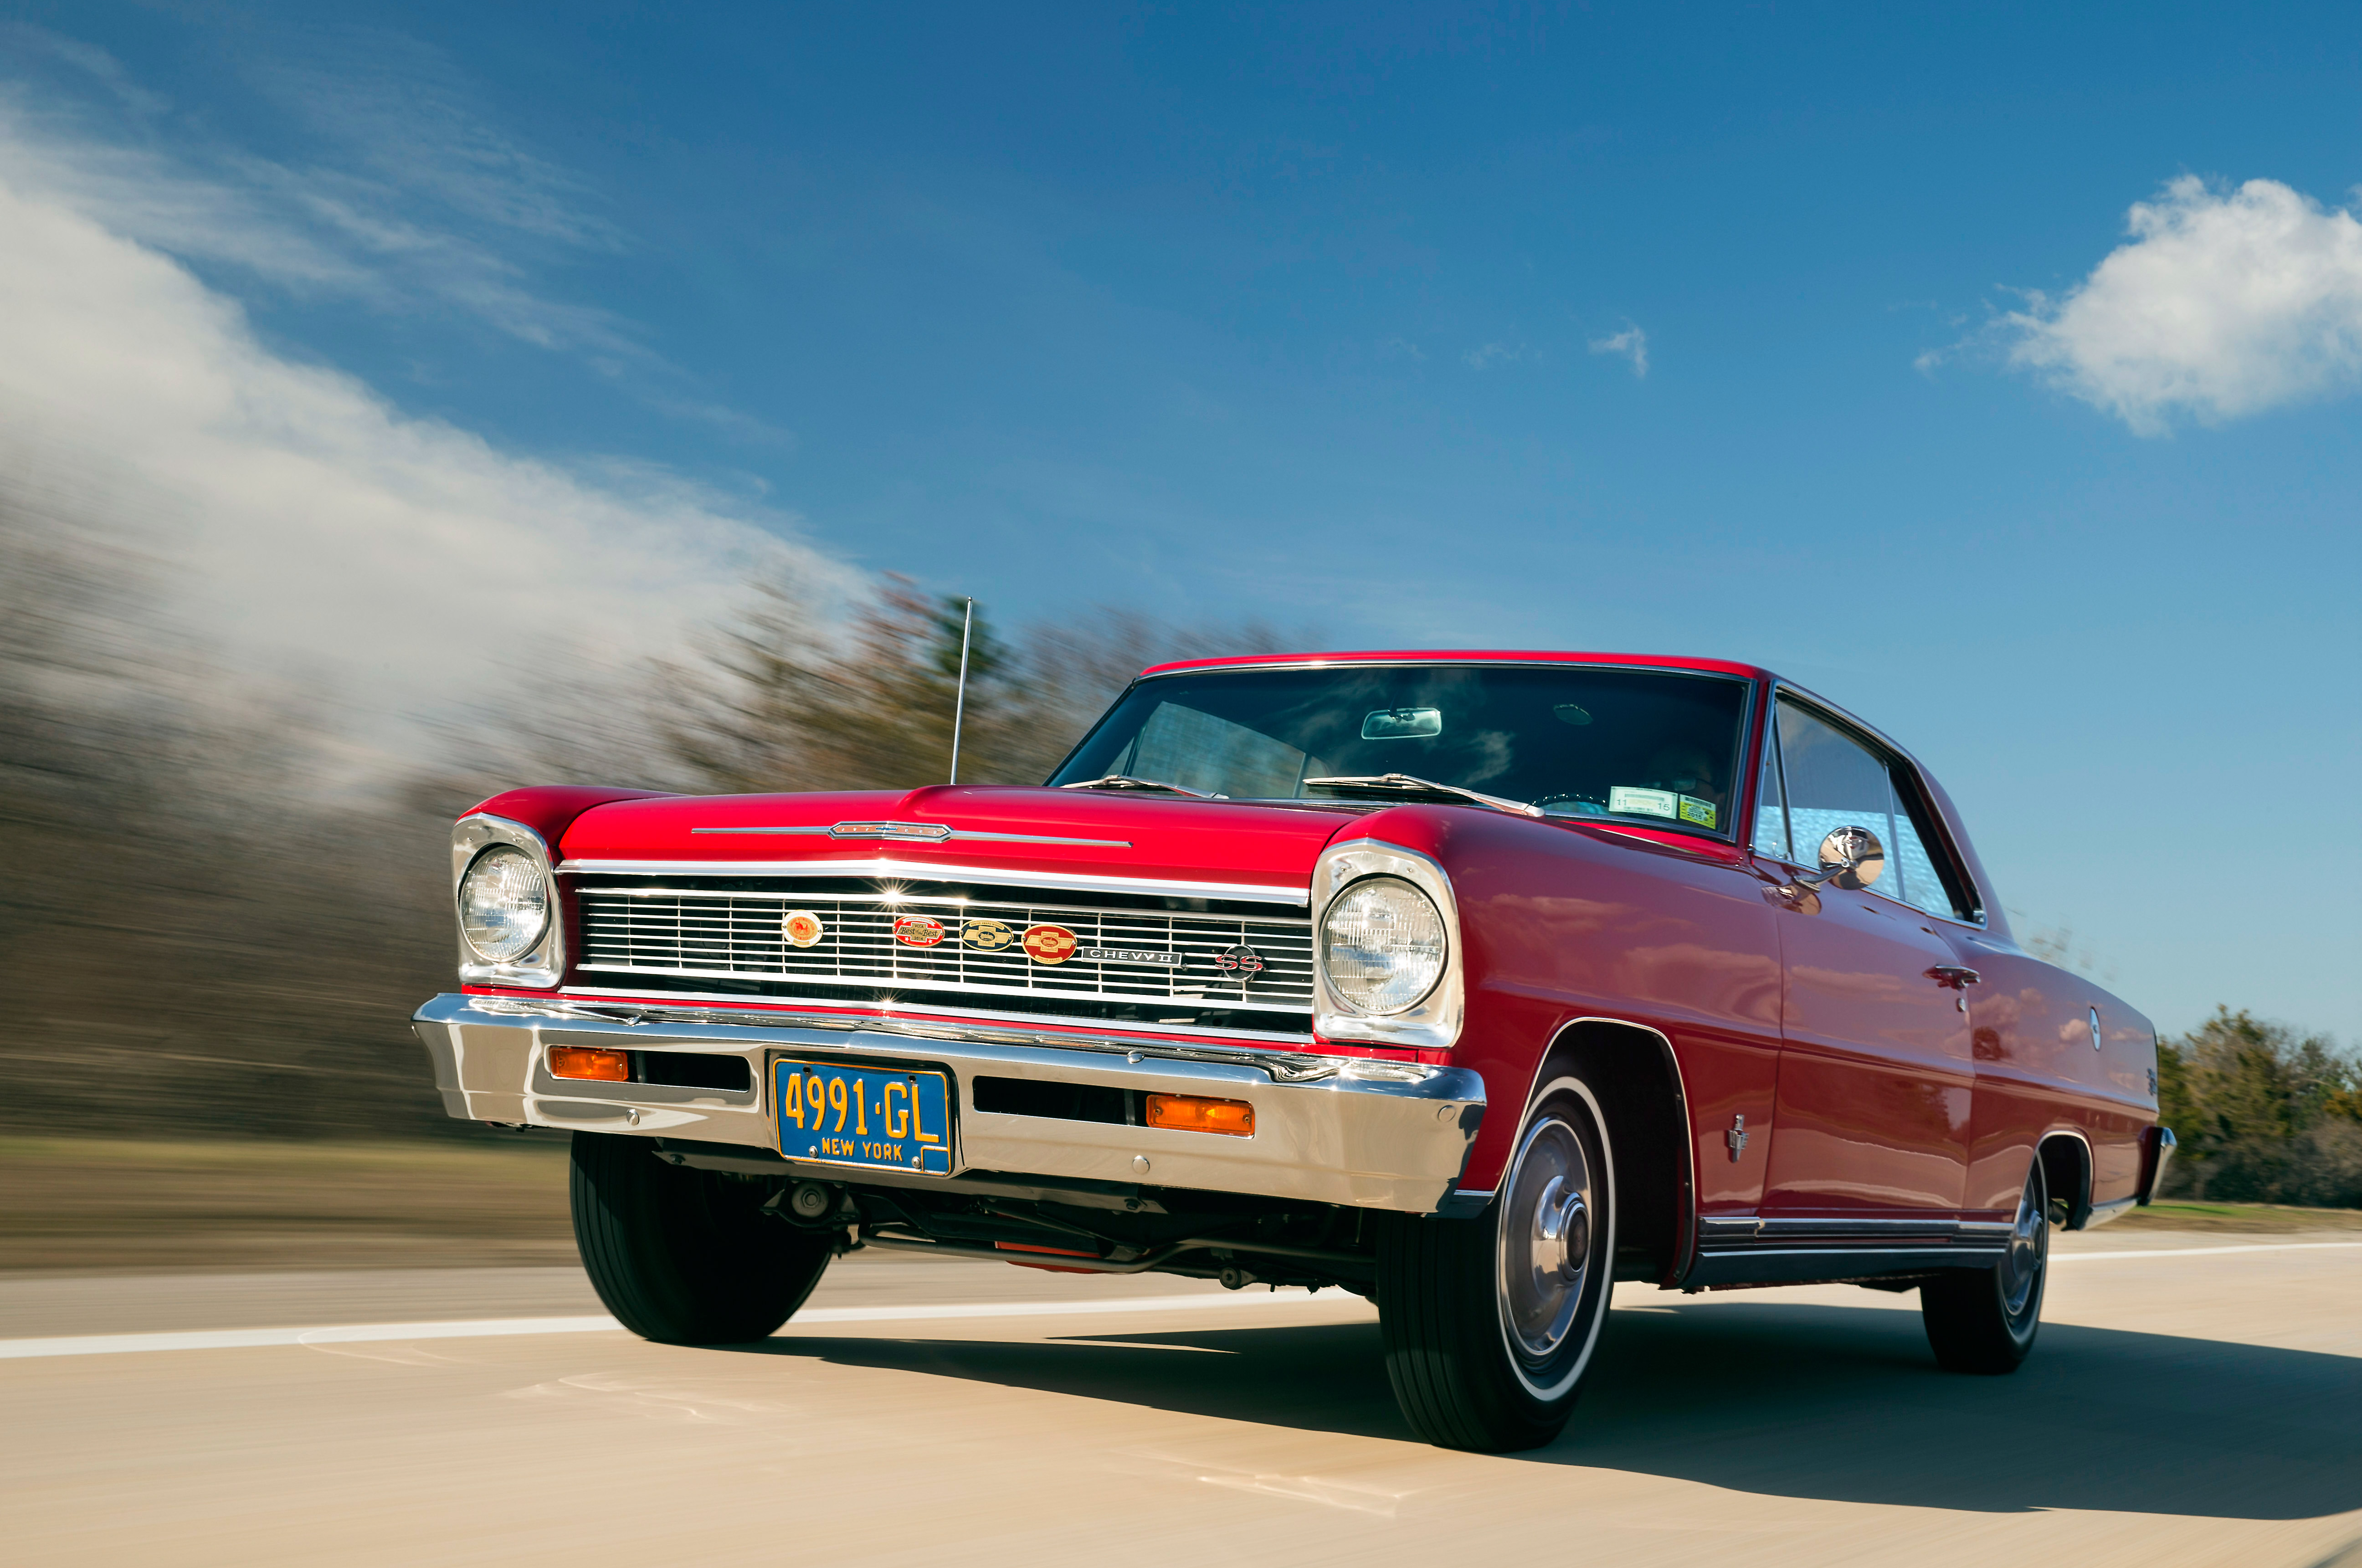 The Original Owner Raced And Now Shows His 1966 Chevrolet